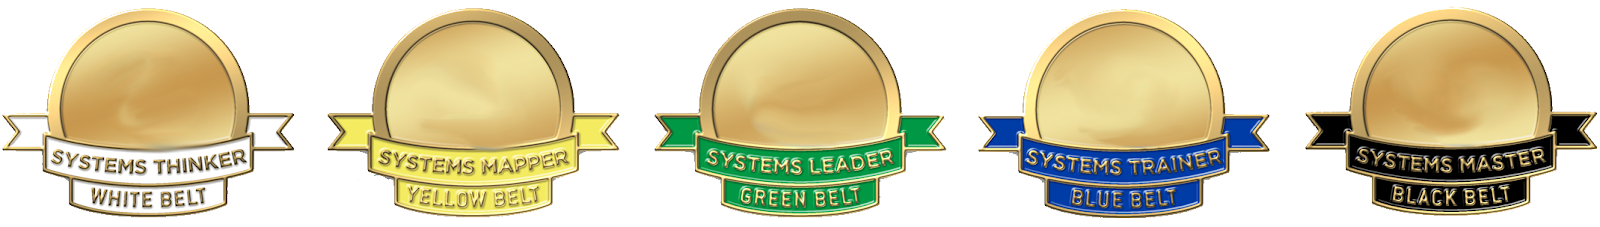 Certifications in Systems Thinking